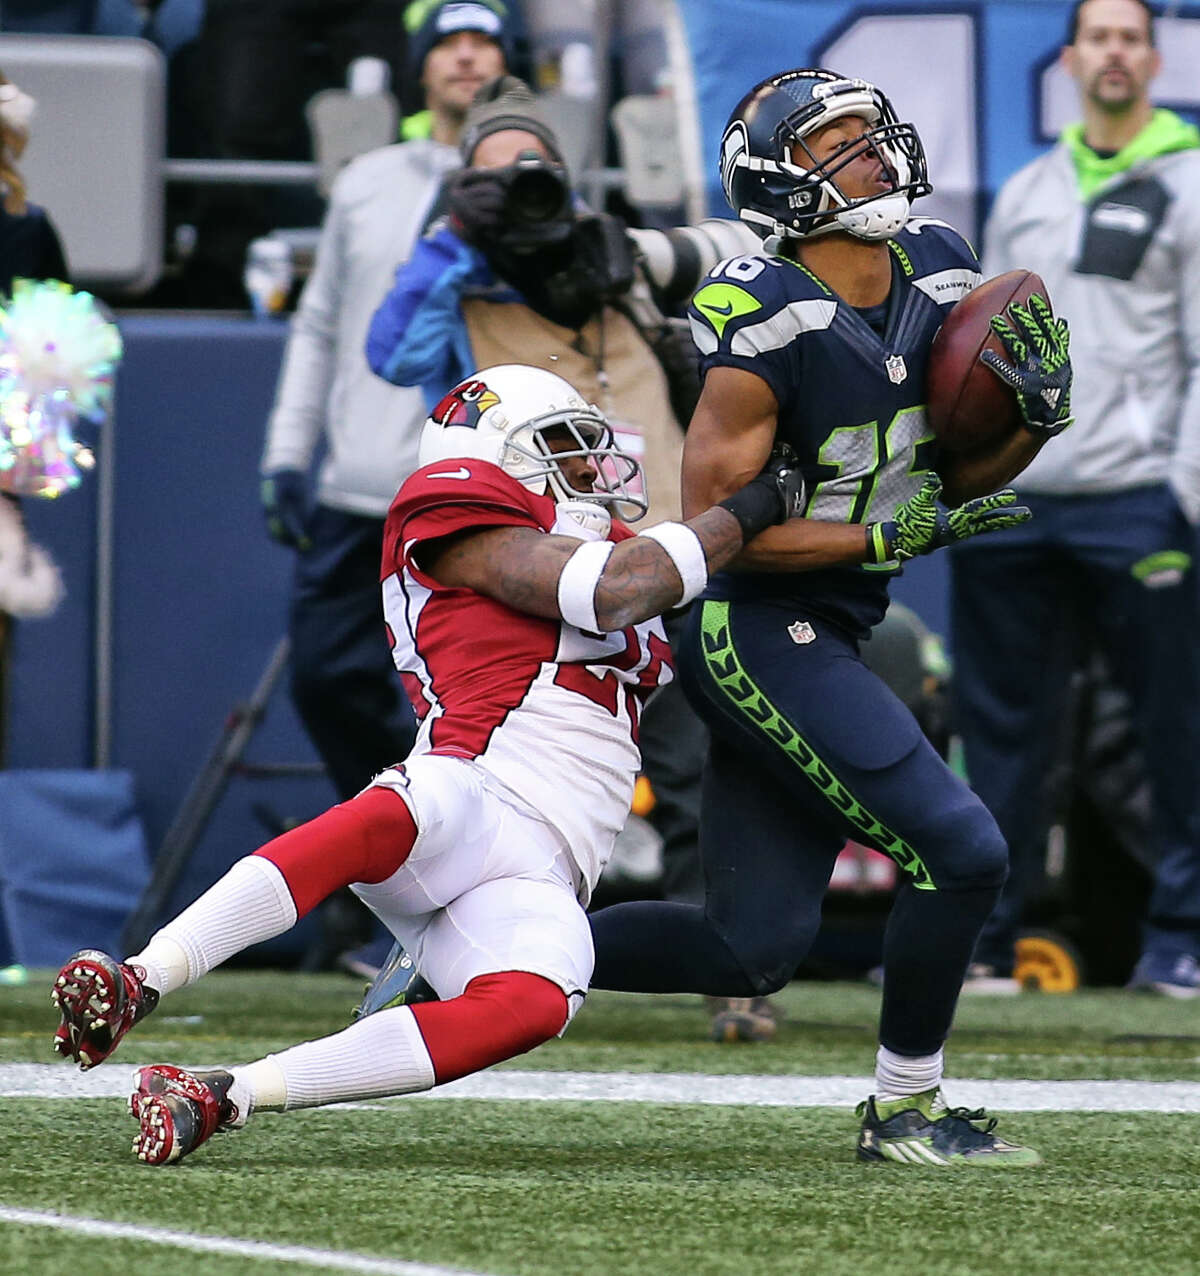 Cardinals cornerback Brandon Williams grabs on to Seahawks wide receiver Tyler Lockett, just before landing on his leg, during a tackle just short of a touchdown for Lockett. Lockett left the field on a cart. (Genna Martin, seattlepi.com)